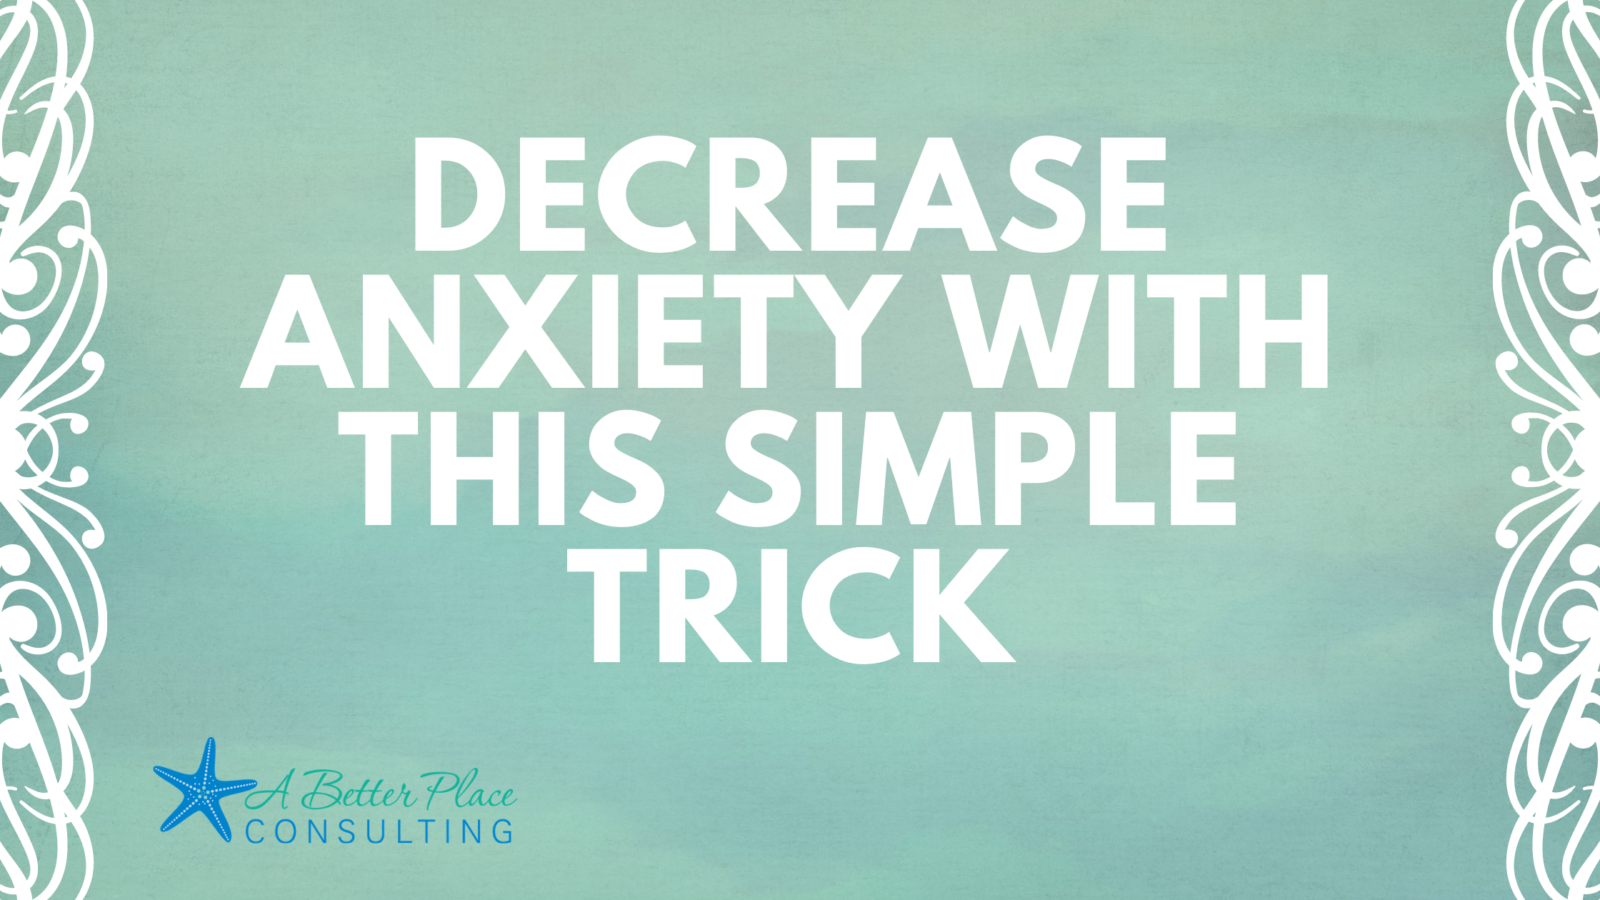 Decrease-anxiety-with-this-simple-trick